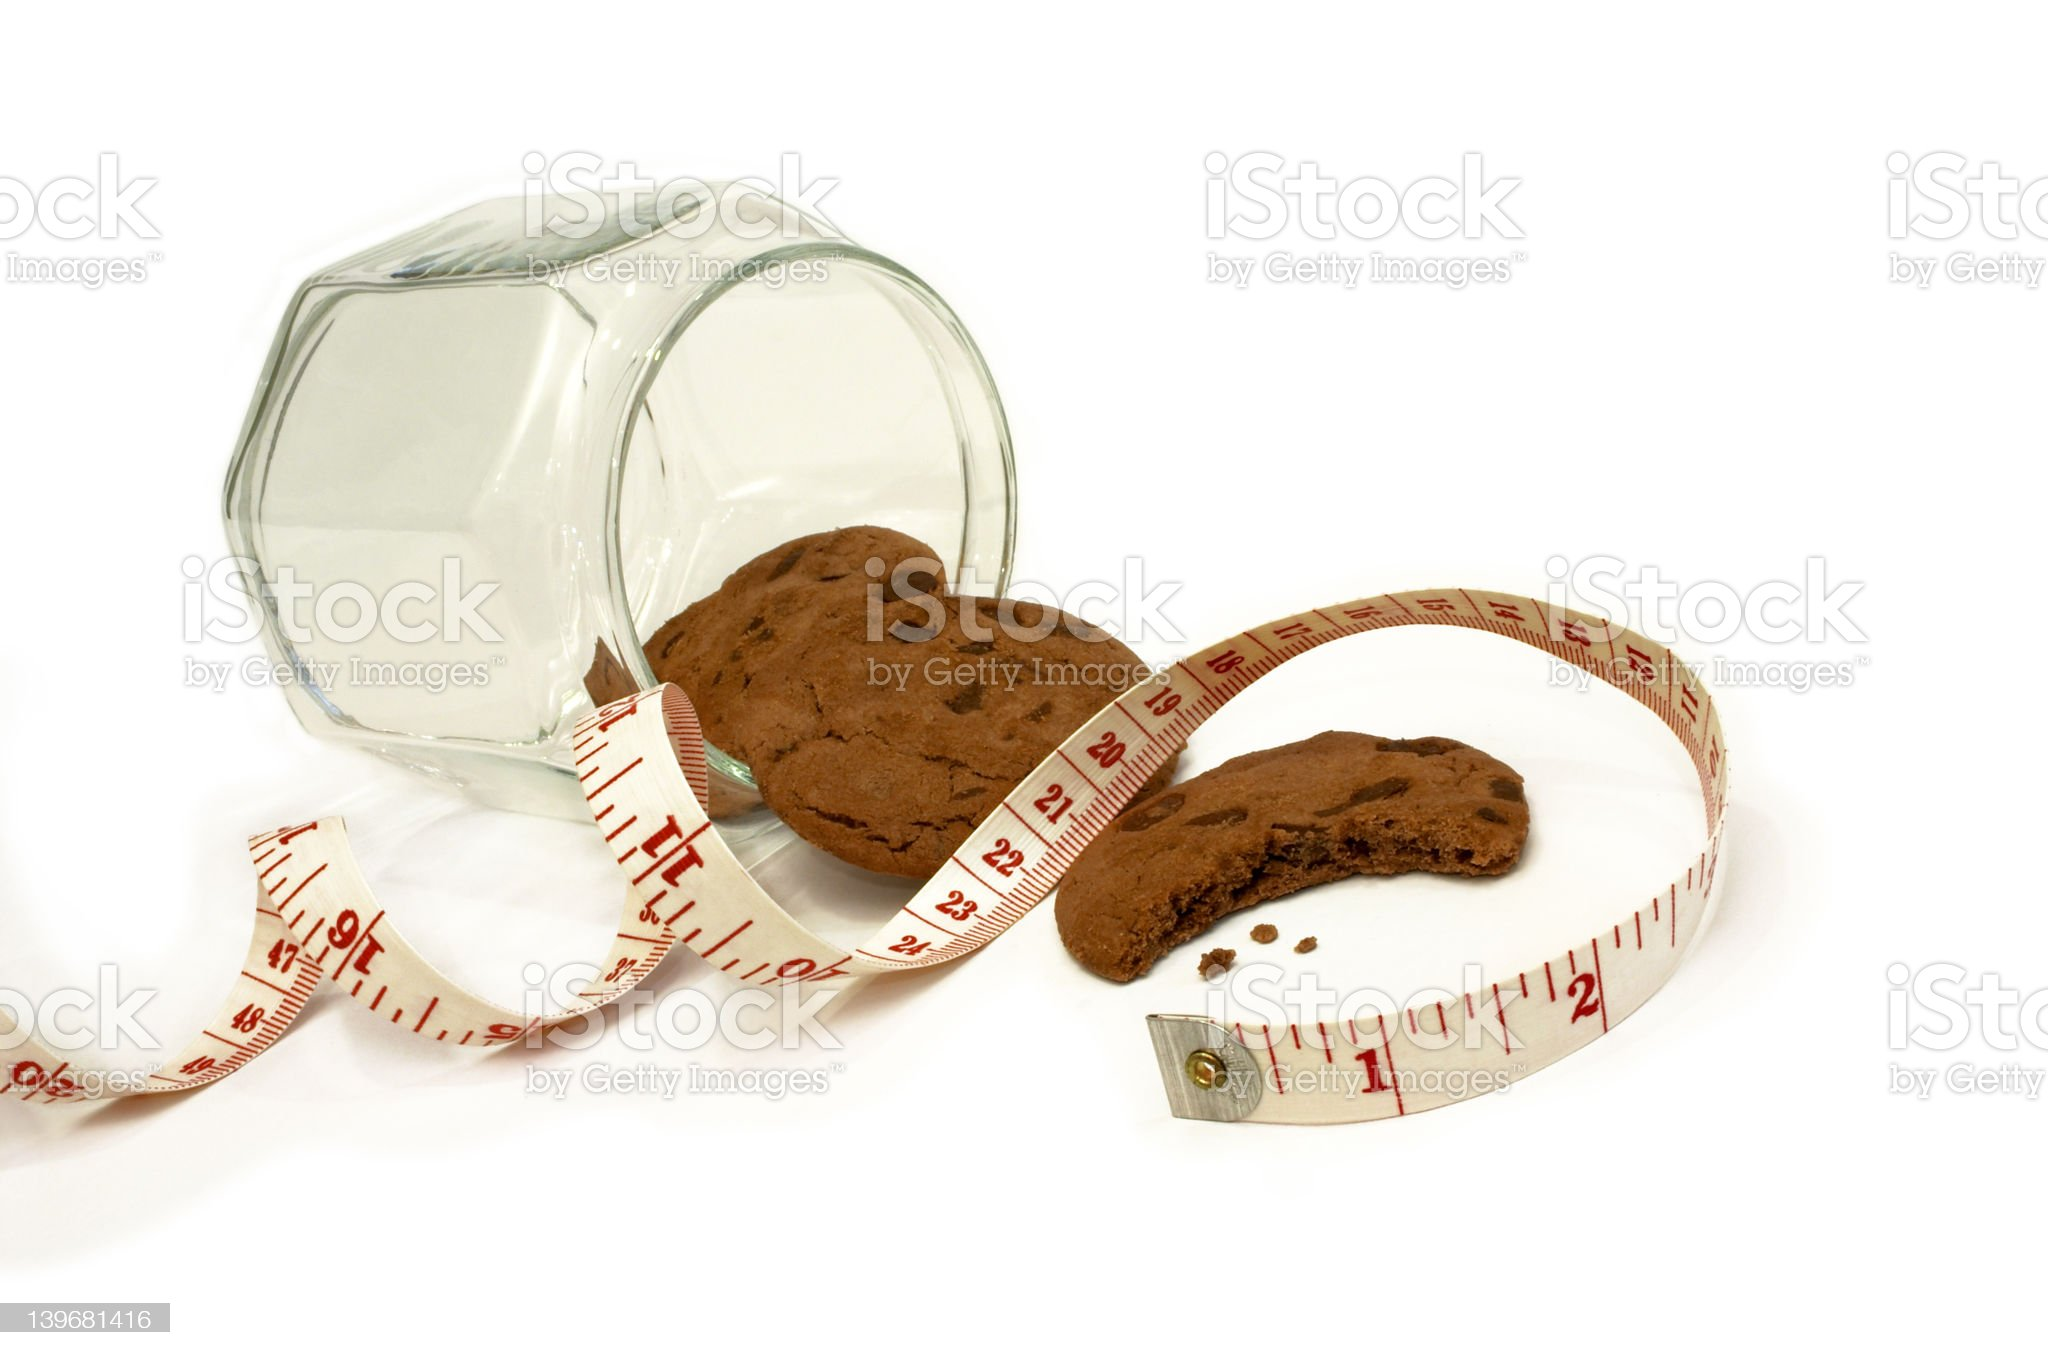 Unhealthy Diets royalty-free stock photo